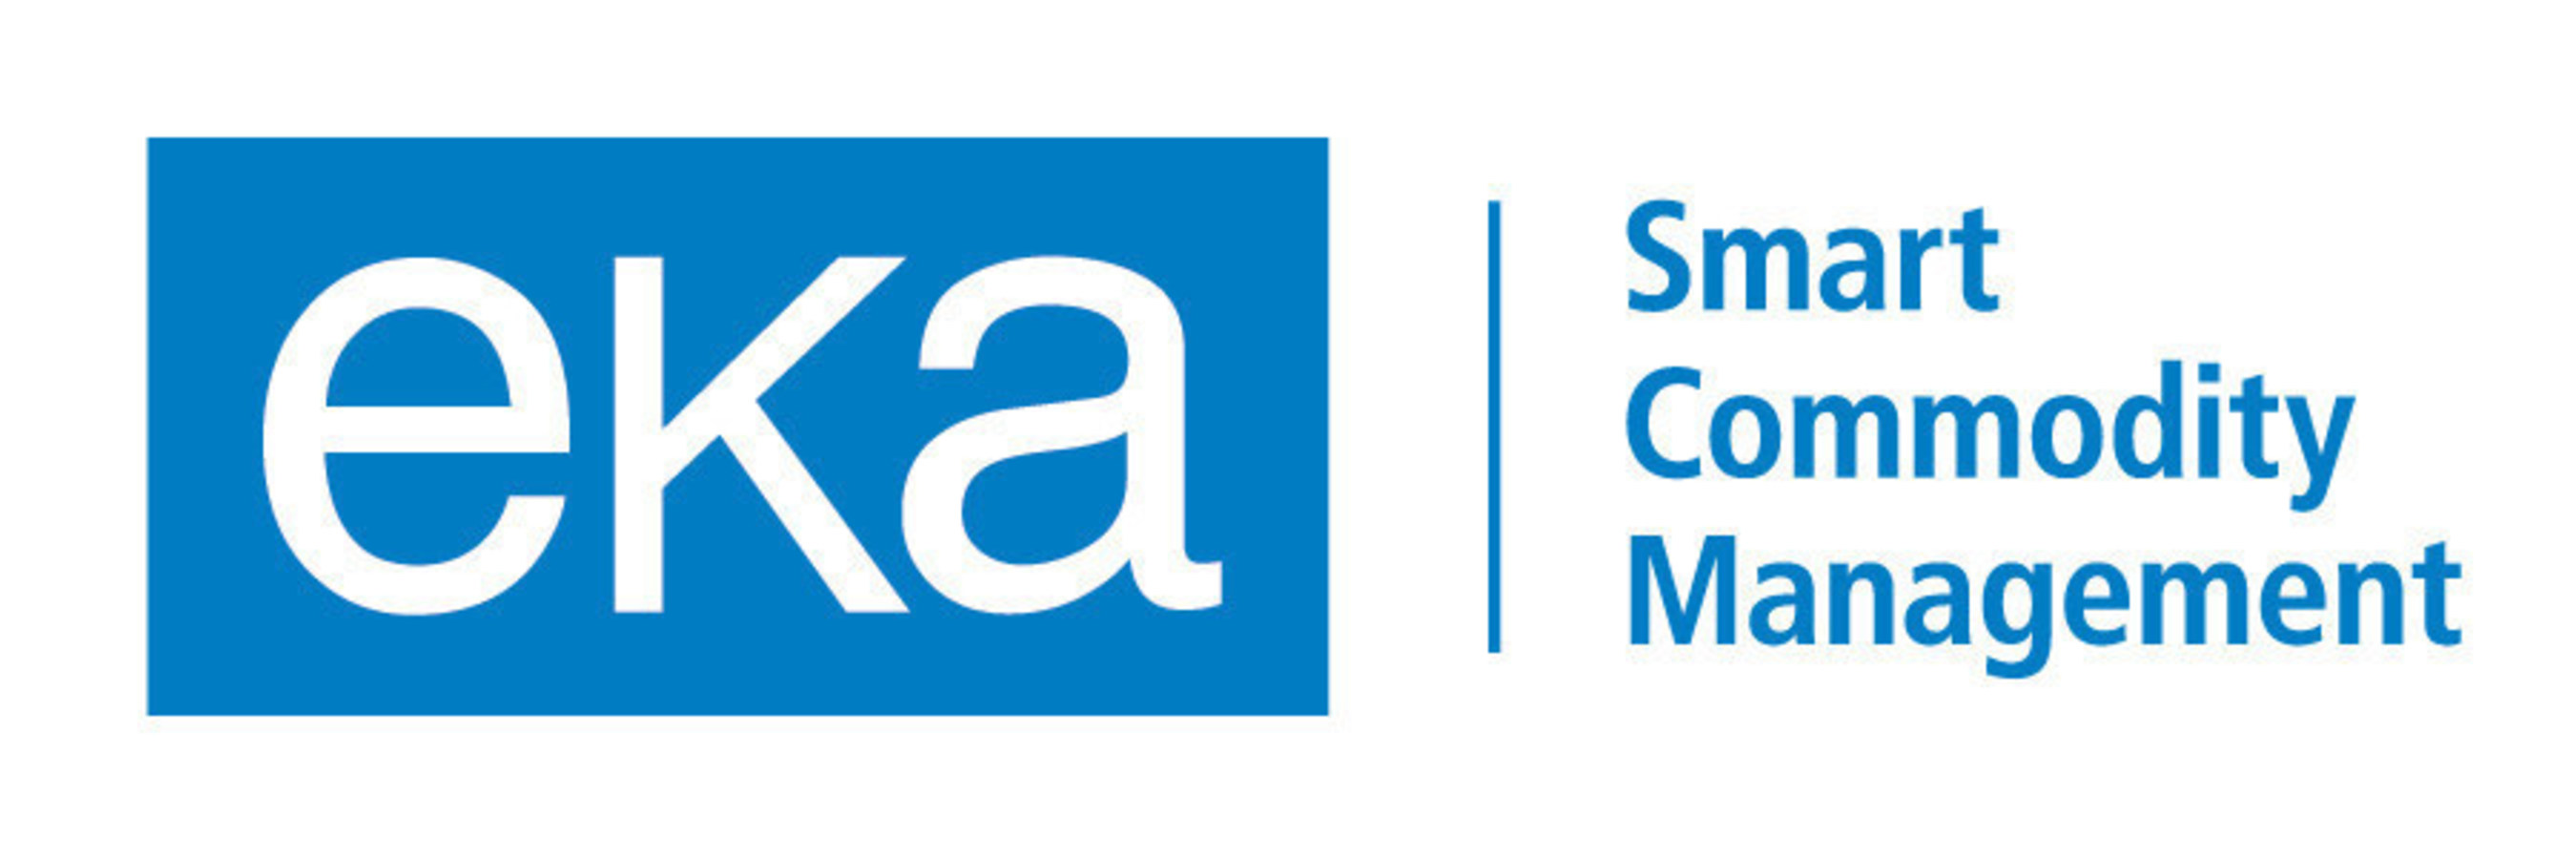 One of the World's Largest Metals and Mining Companies Licenses Eka's CTRM Software and Commodity Analytics Platform for Planning and Scheduling of Critical Operations